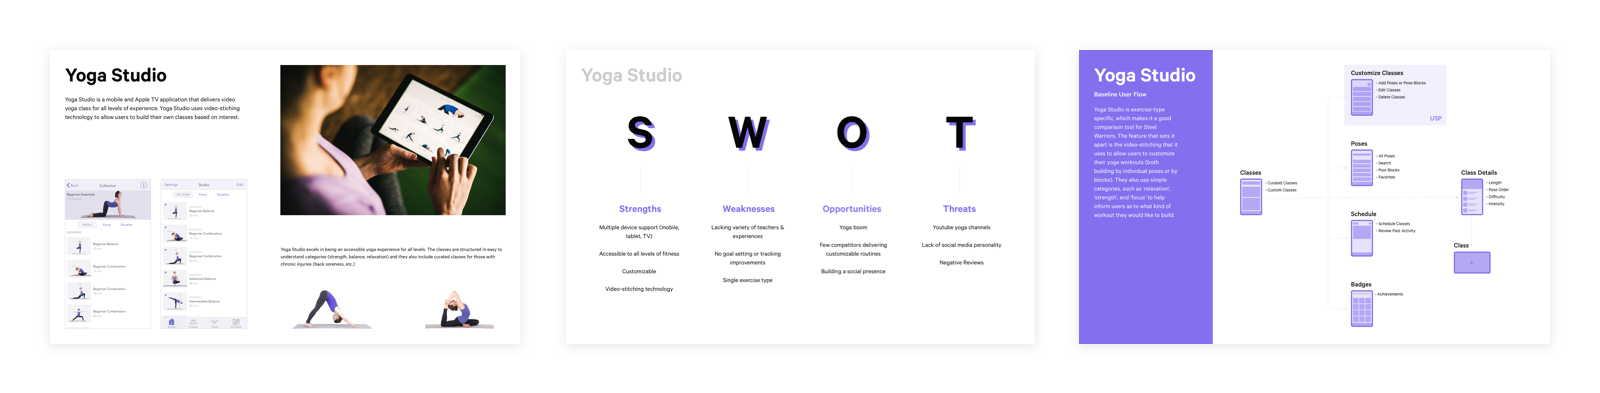 Presentation pages showcasing research outcomes from investigating  Yoga Studio